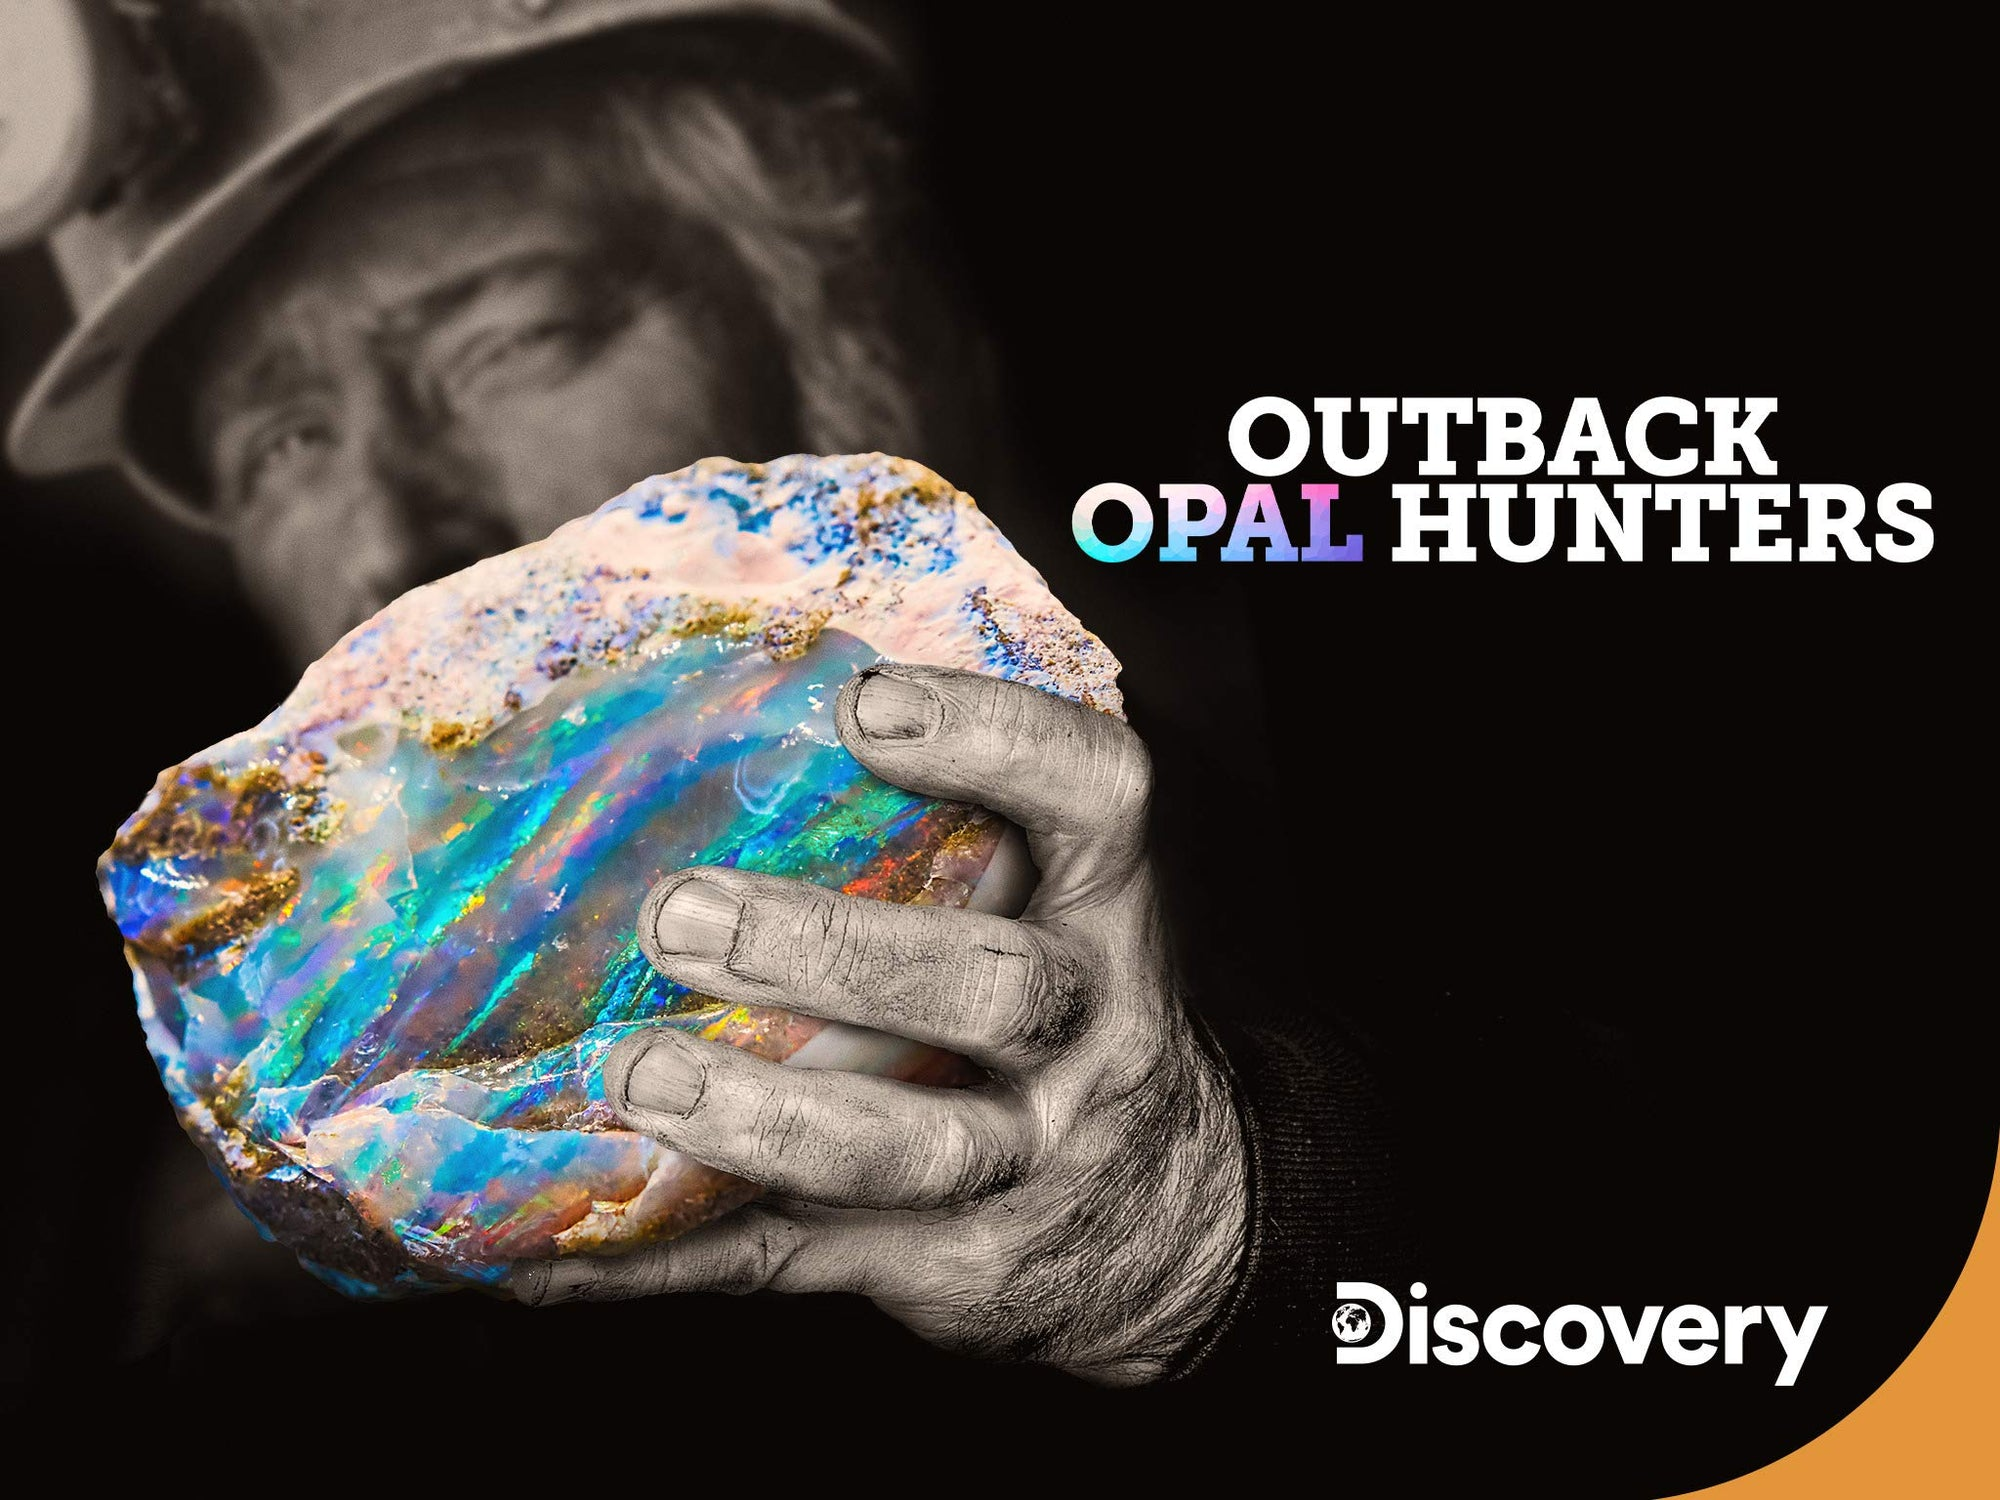 Absolute Opals on TV – Outback Opal Hunters Season 2